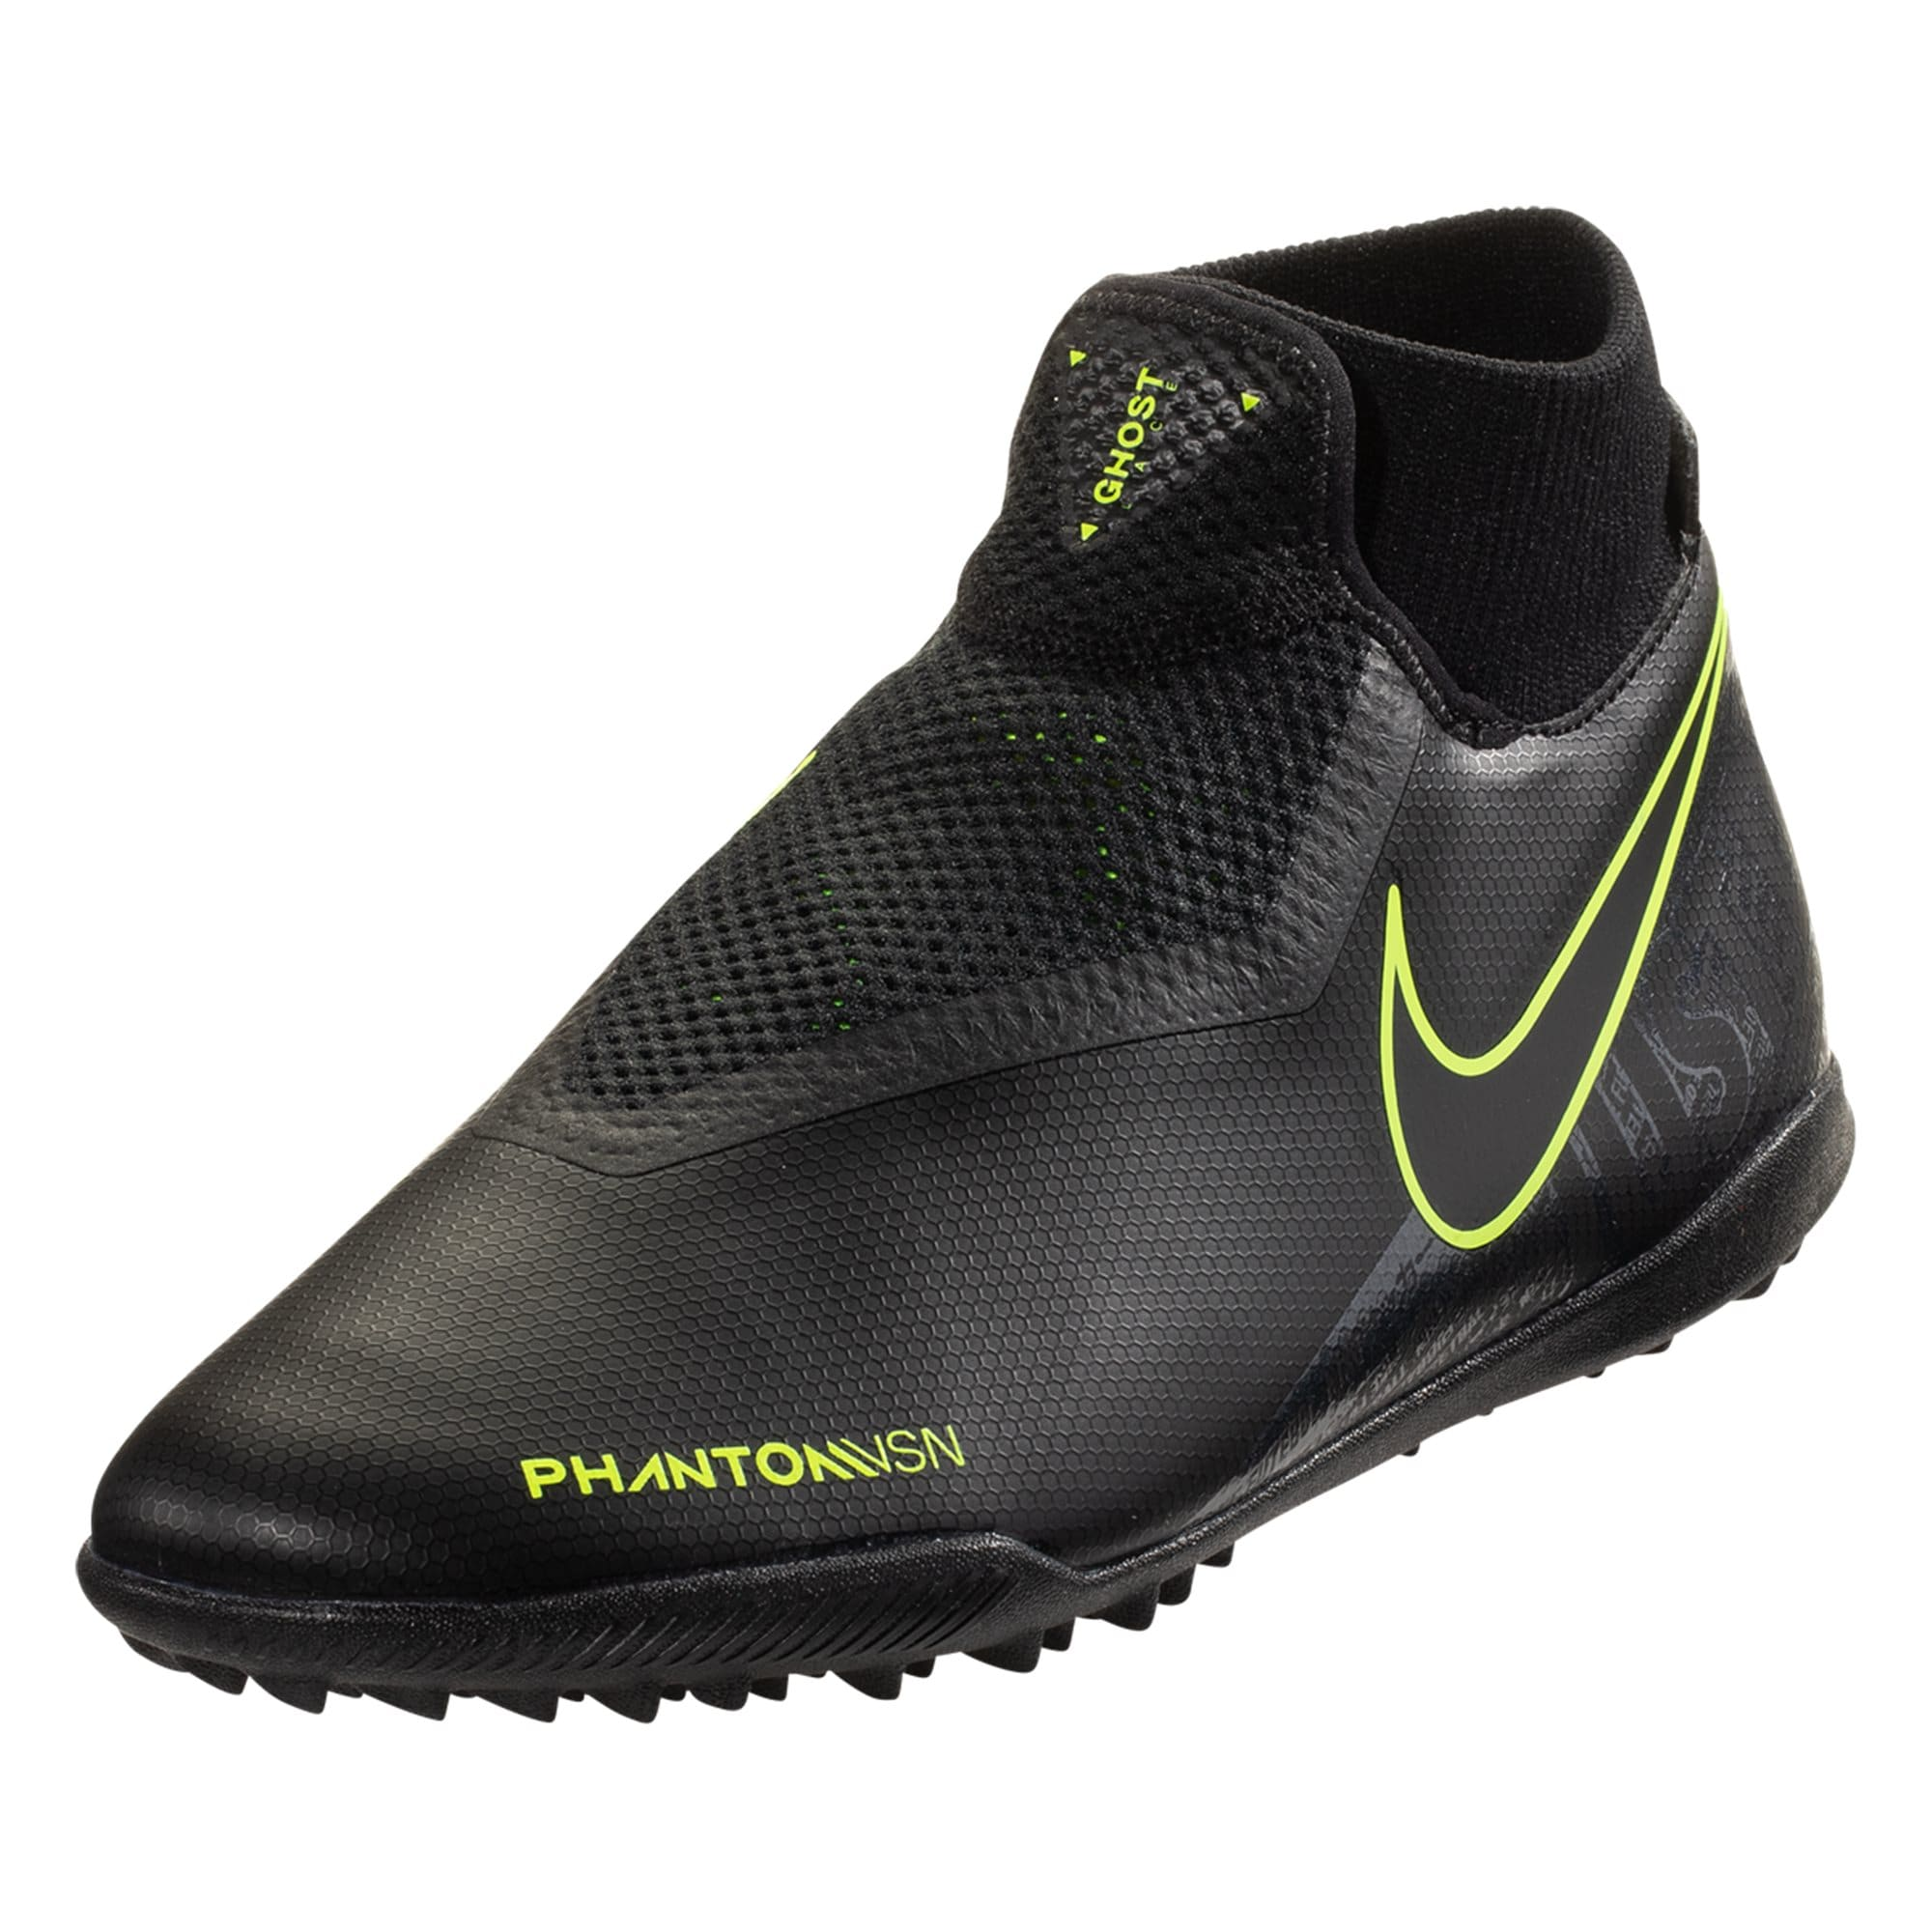 Nike Phantom Vision Academy DF TF Artificial Turf Soccer Shoe - Black / Black/Volt